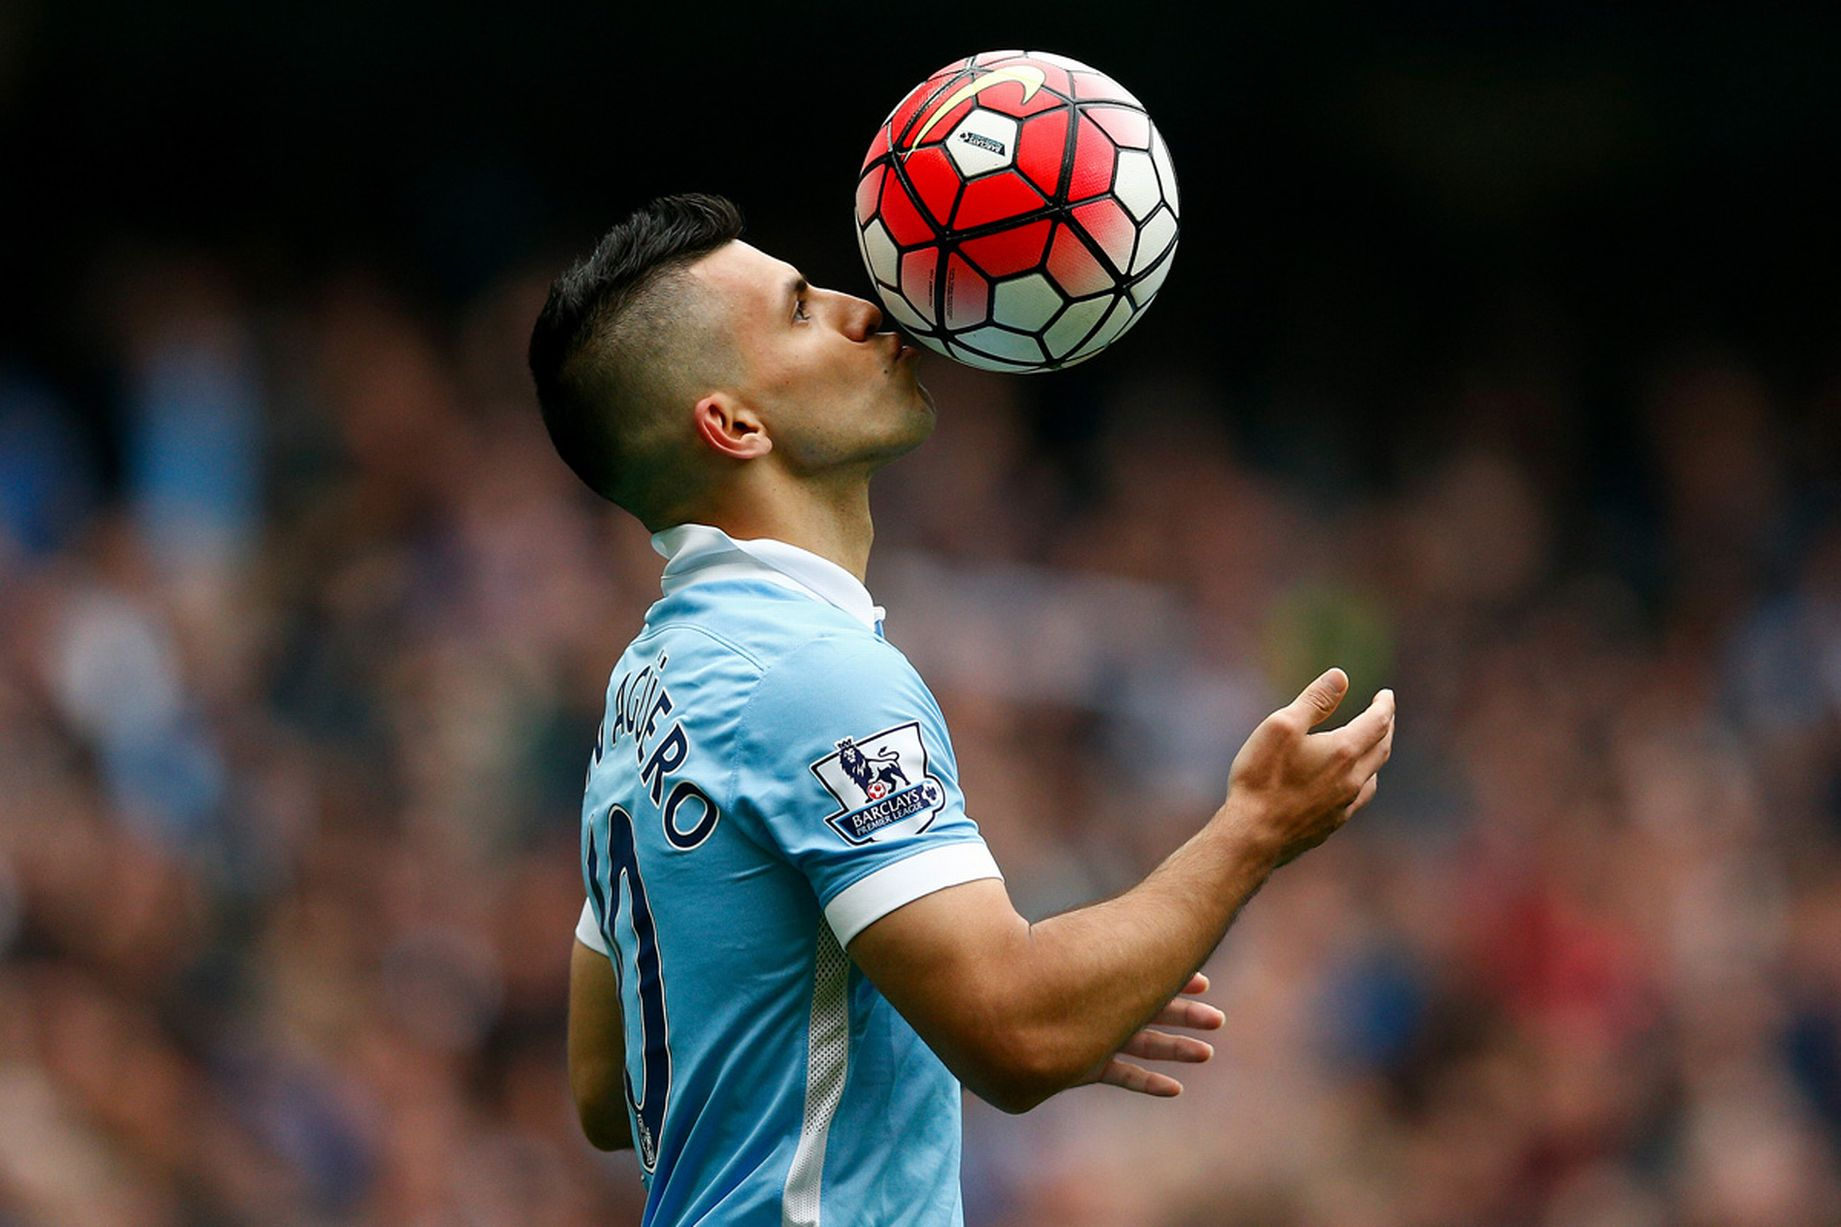 Sergio-Aguero-kisses-the-ball-to-celebrate-his-hat-trick